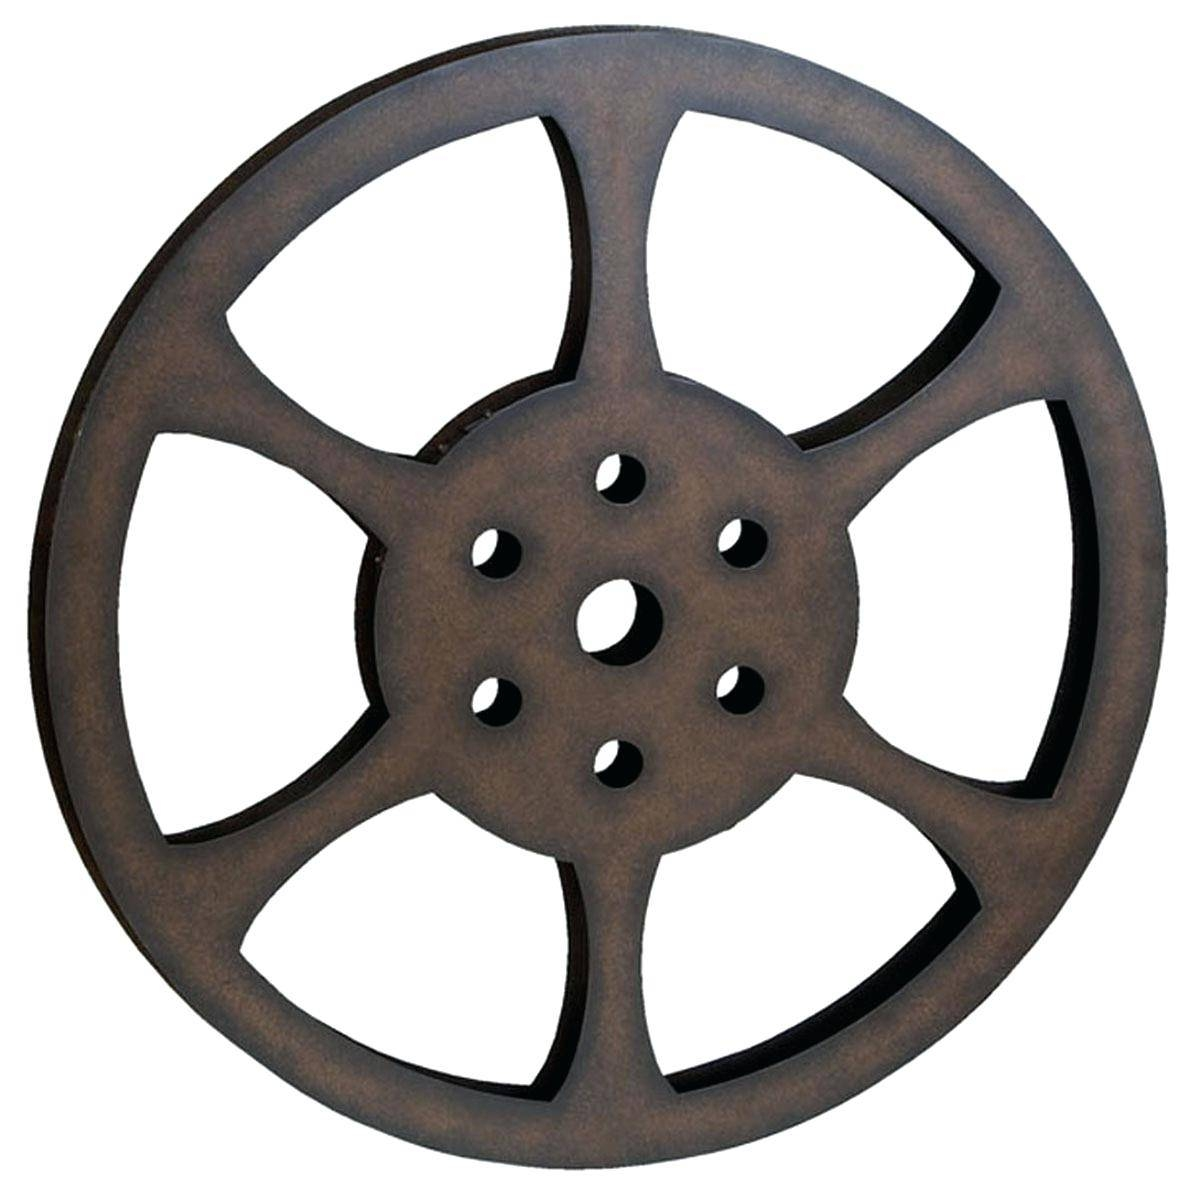 Articles With Metal Film Reel Wall Decor Tag: Movie Reel Wall With Regard To 2018 Film Reel Wall Art (View 7 of 30)